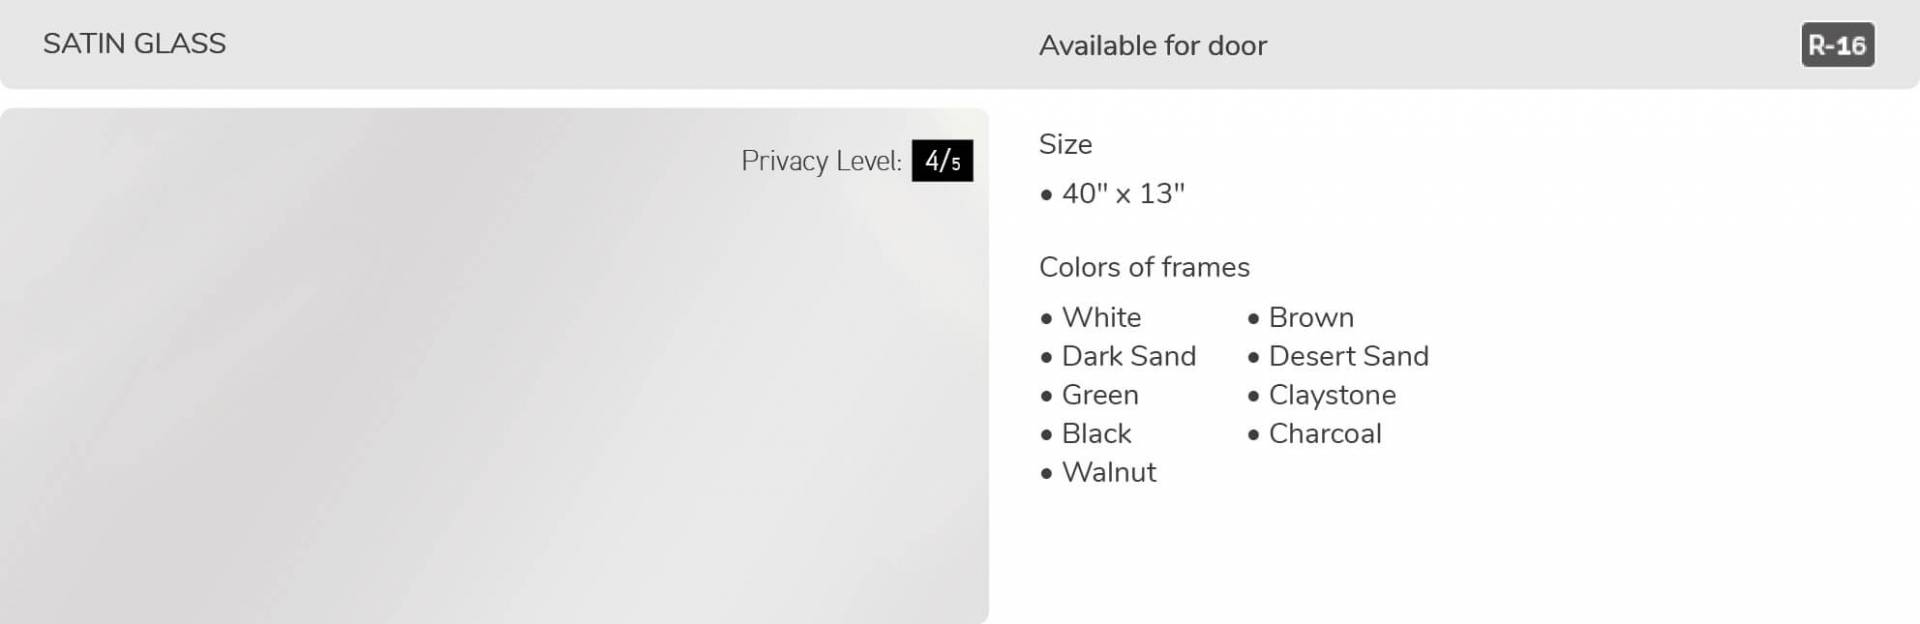 "Satin Glass, 40"" x 13"", available for door R-16"